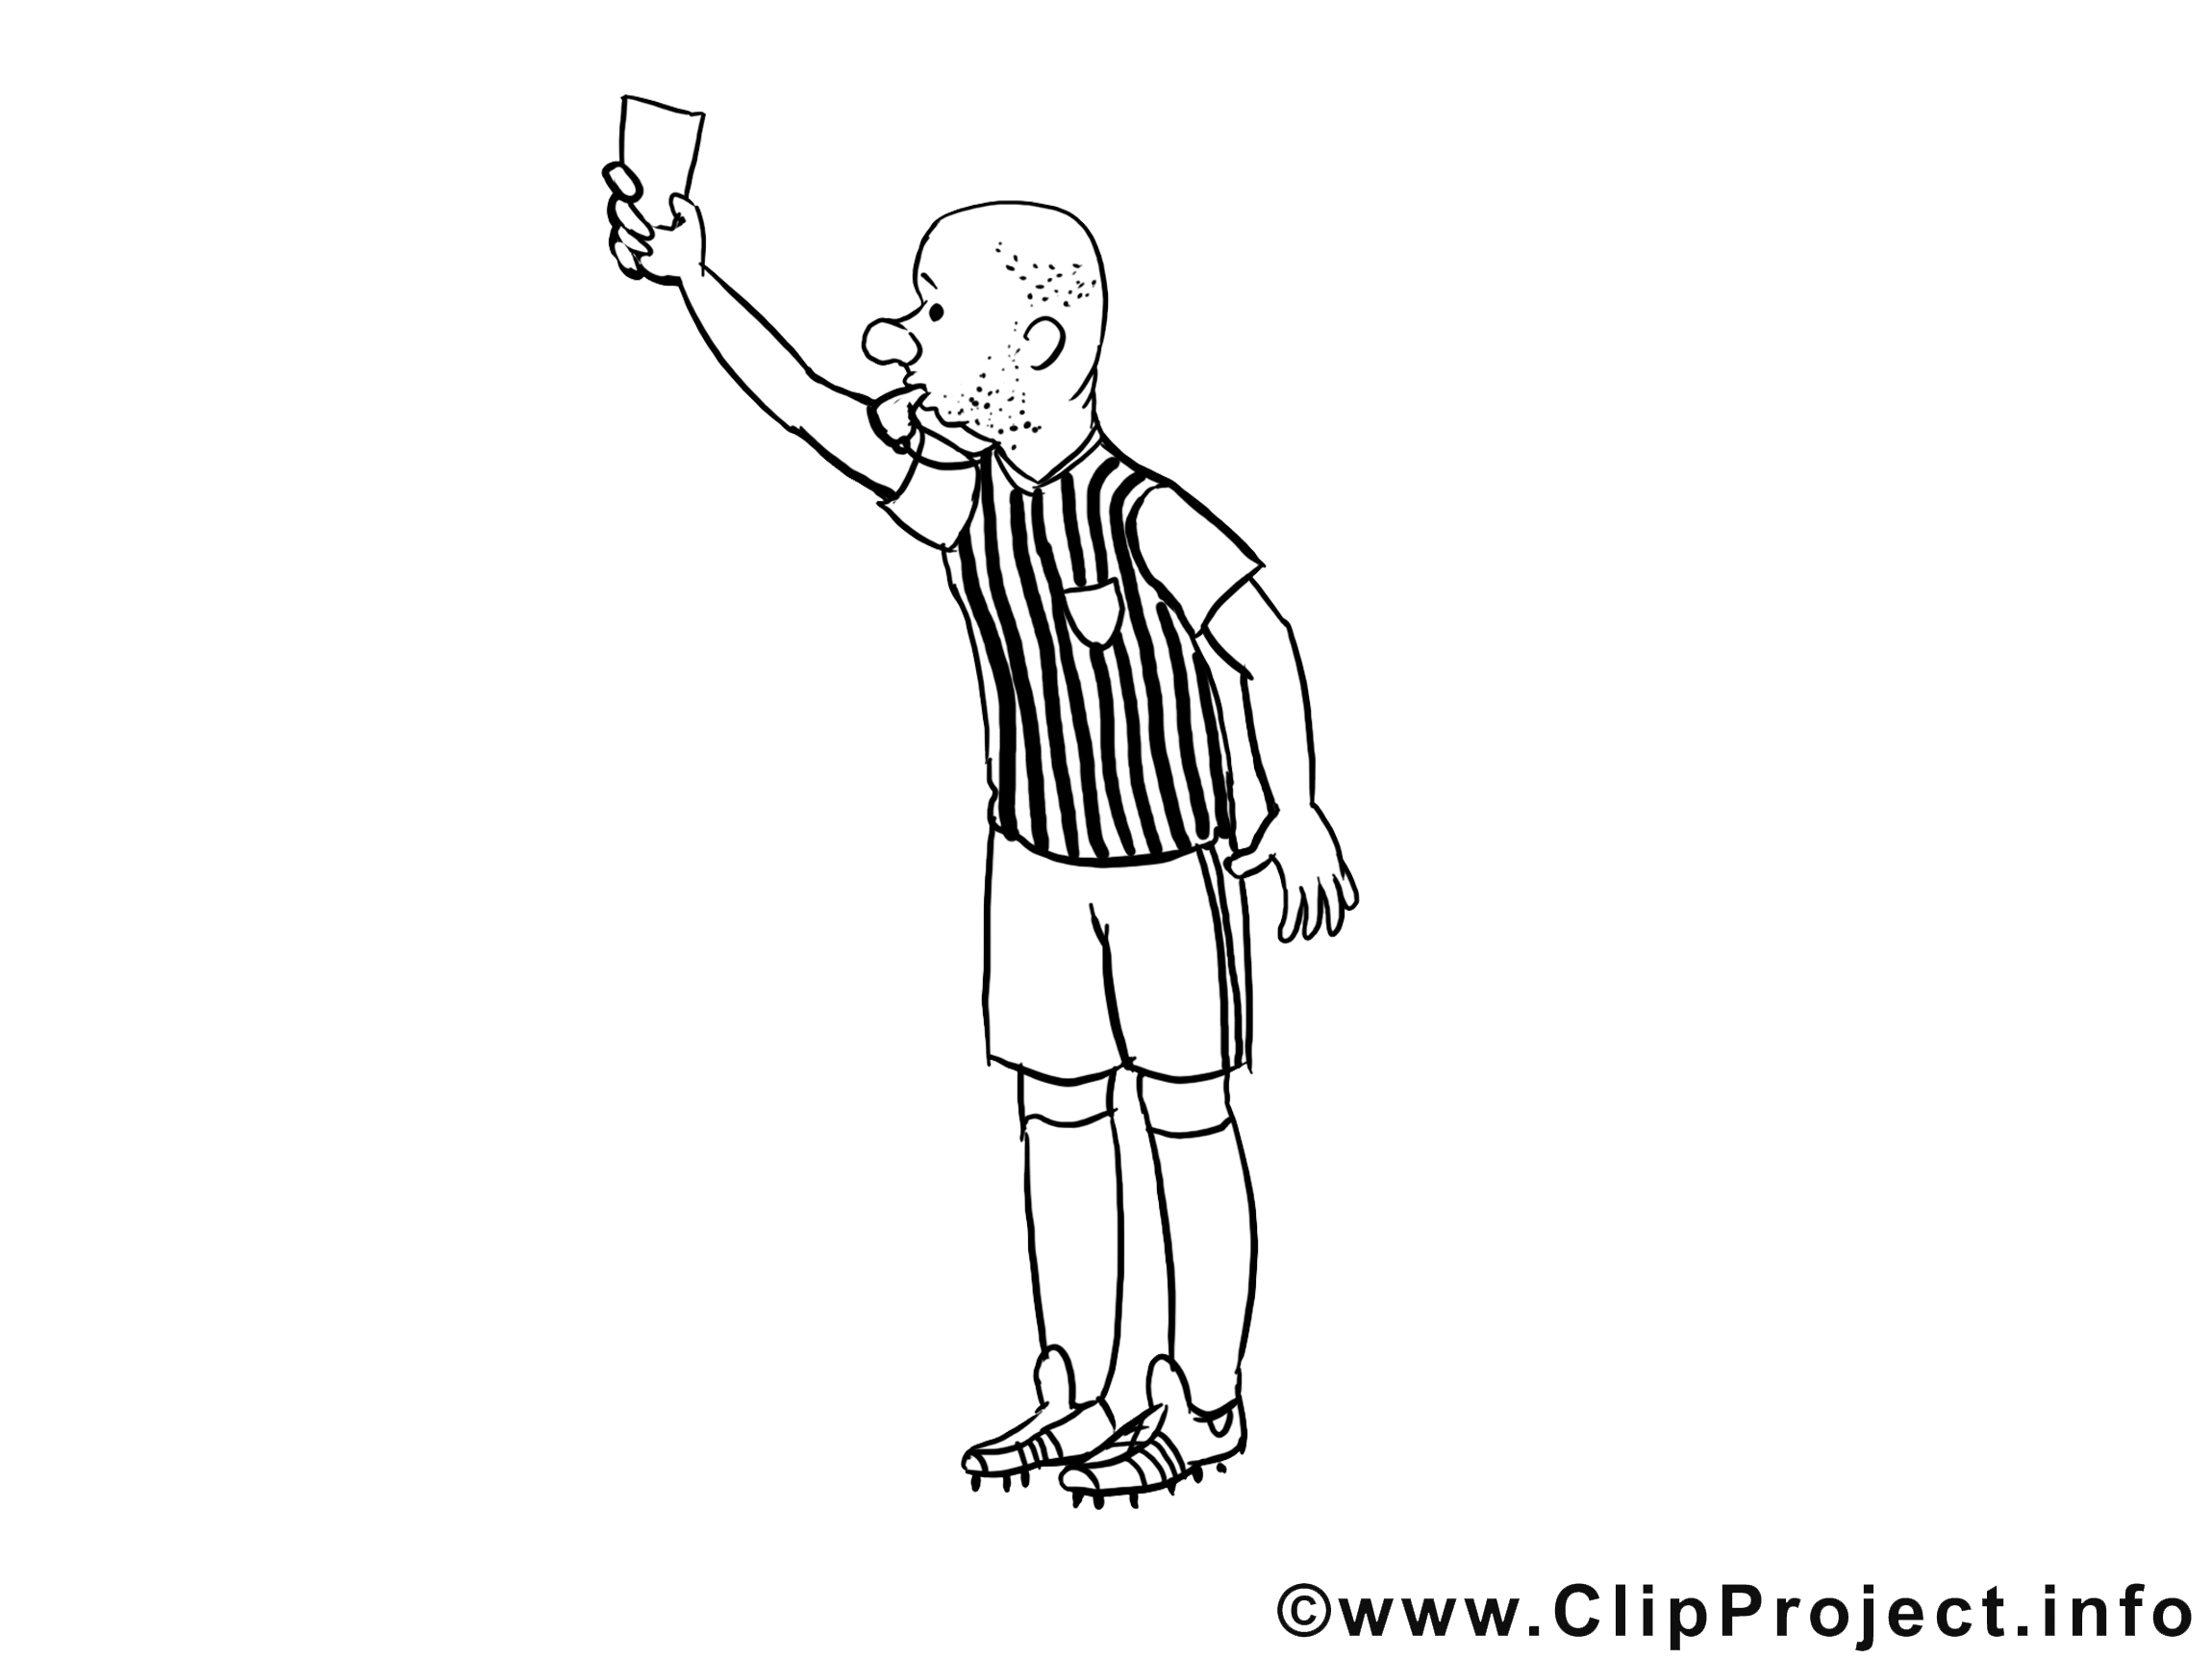 Penalty dessin – Coloriage football à télécharger